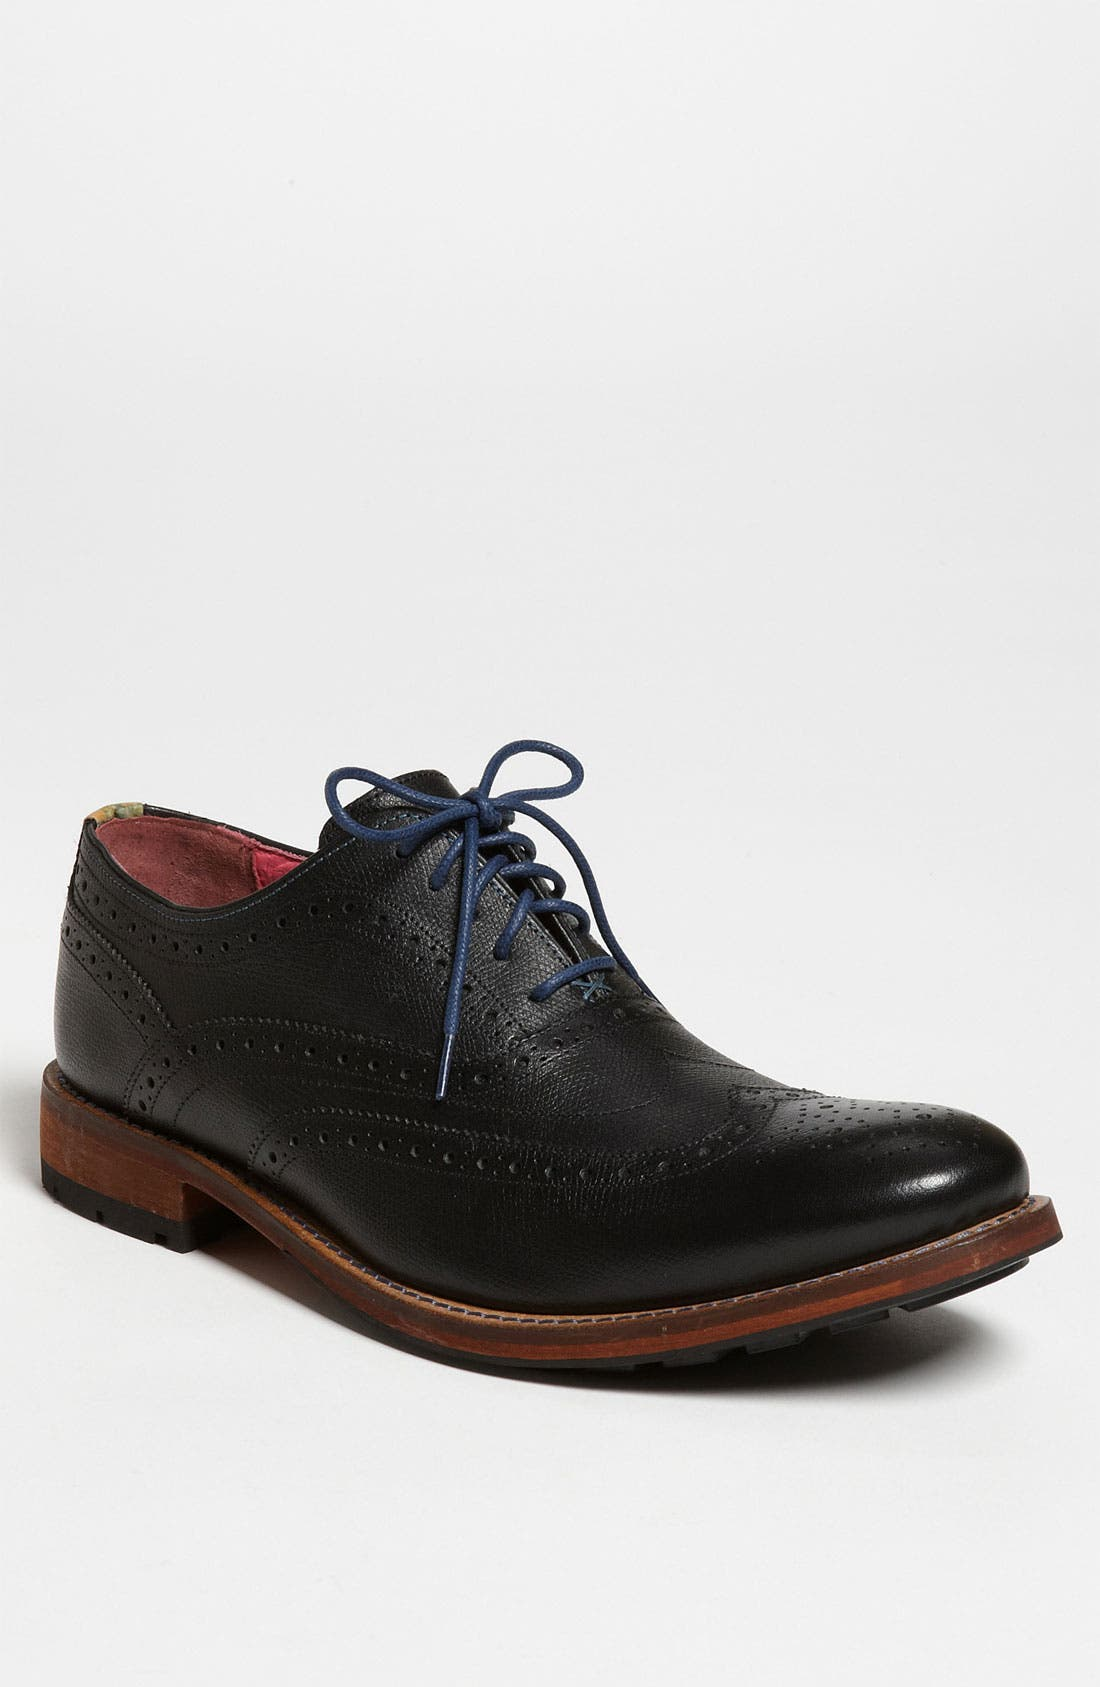 Main Image - Ted Baker London 'Guri' Wingtip Oxford